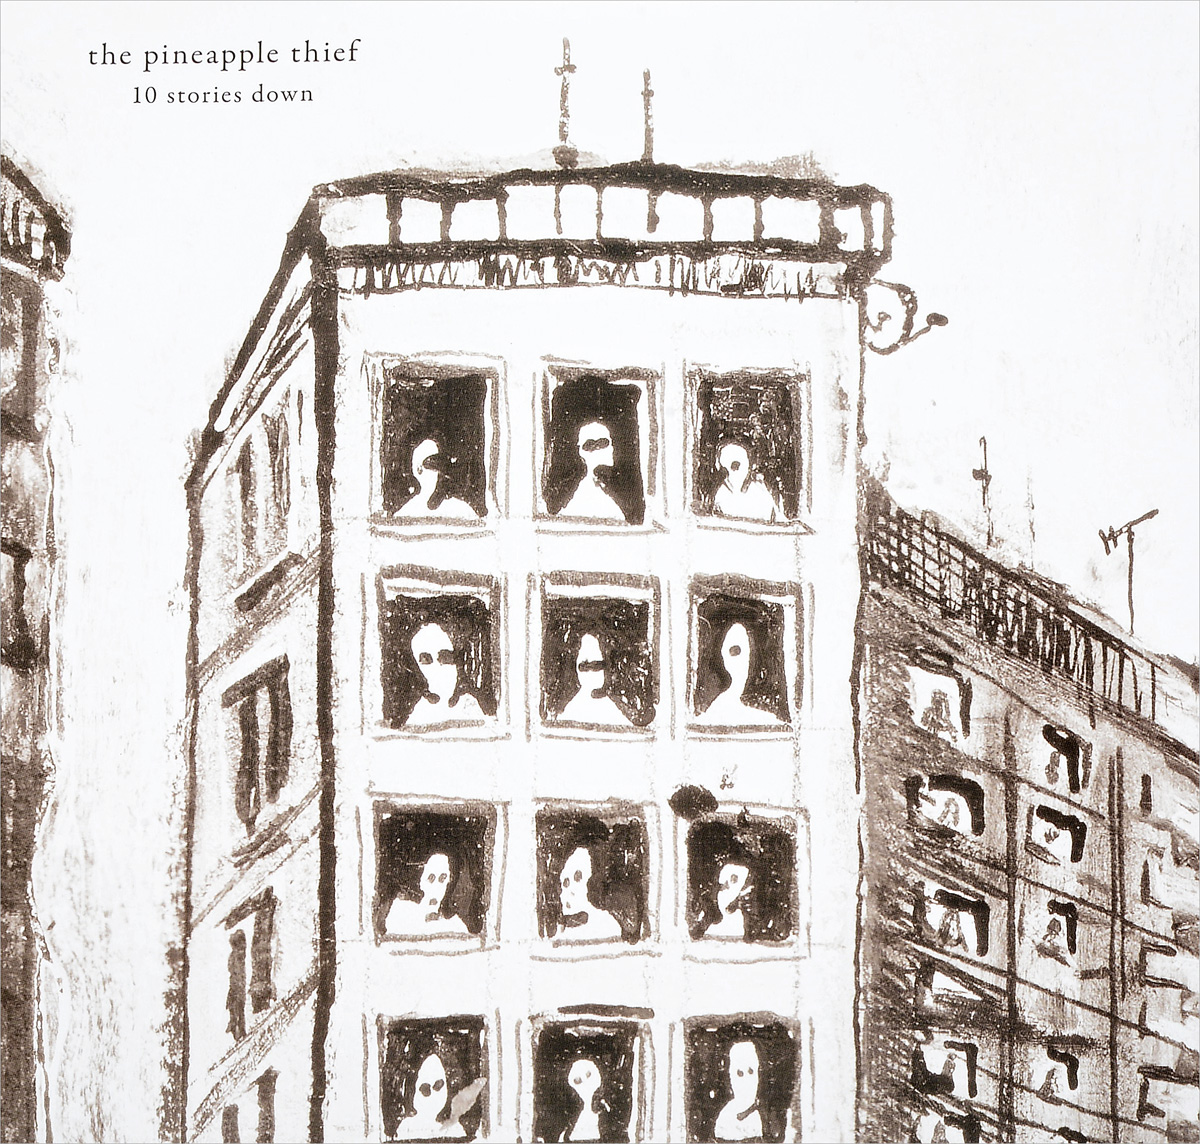 The Pineapple Thief The Pineapple Thief. 10 Stories Down (2 LP)